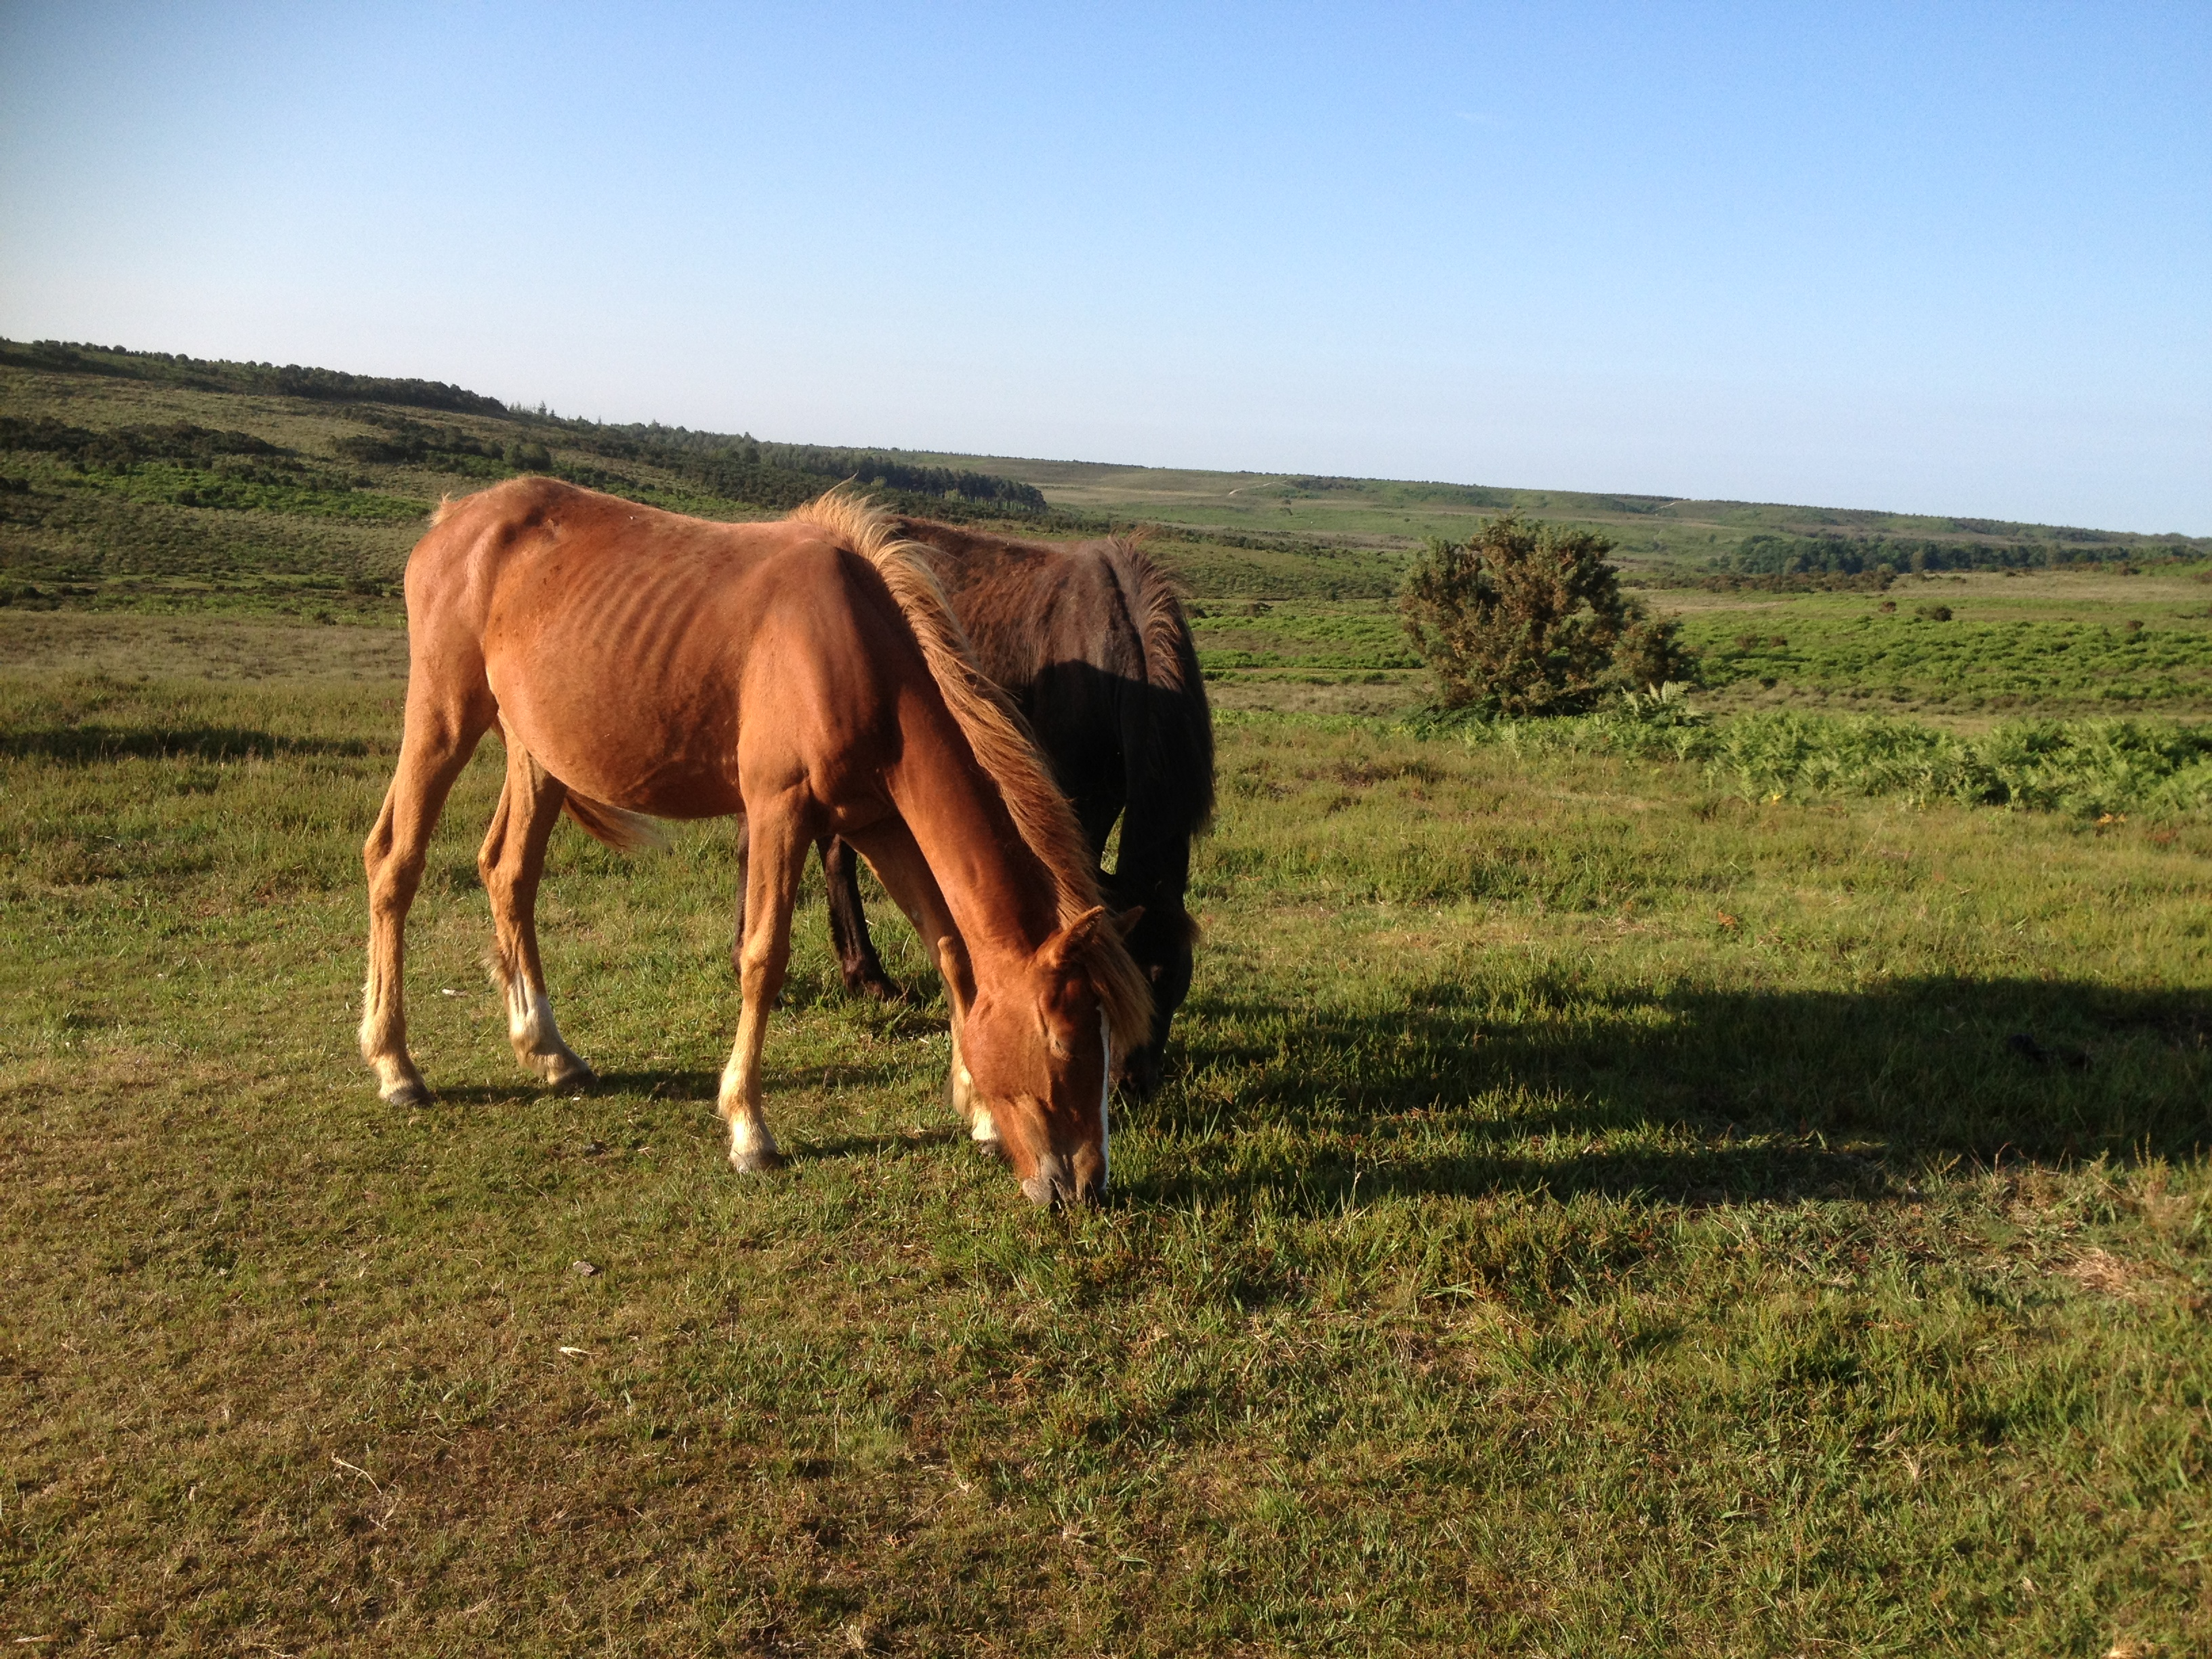 The flush of spring grass will ensure 'Doctor Green' will act as a tonic on the free-roaming ponies of the New Forest.